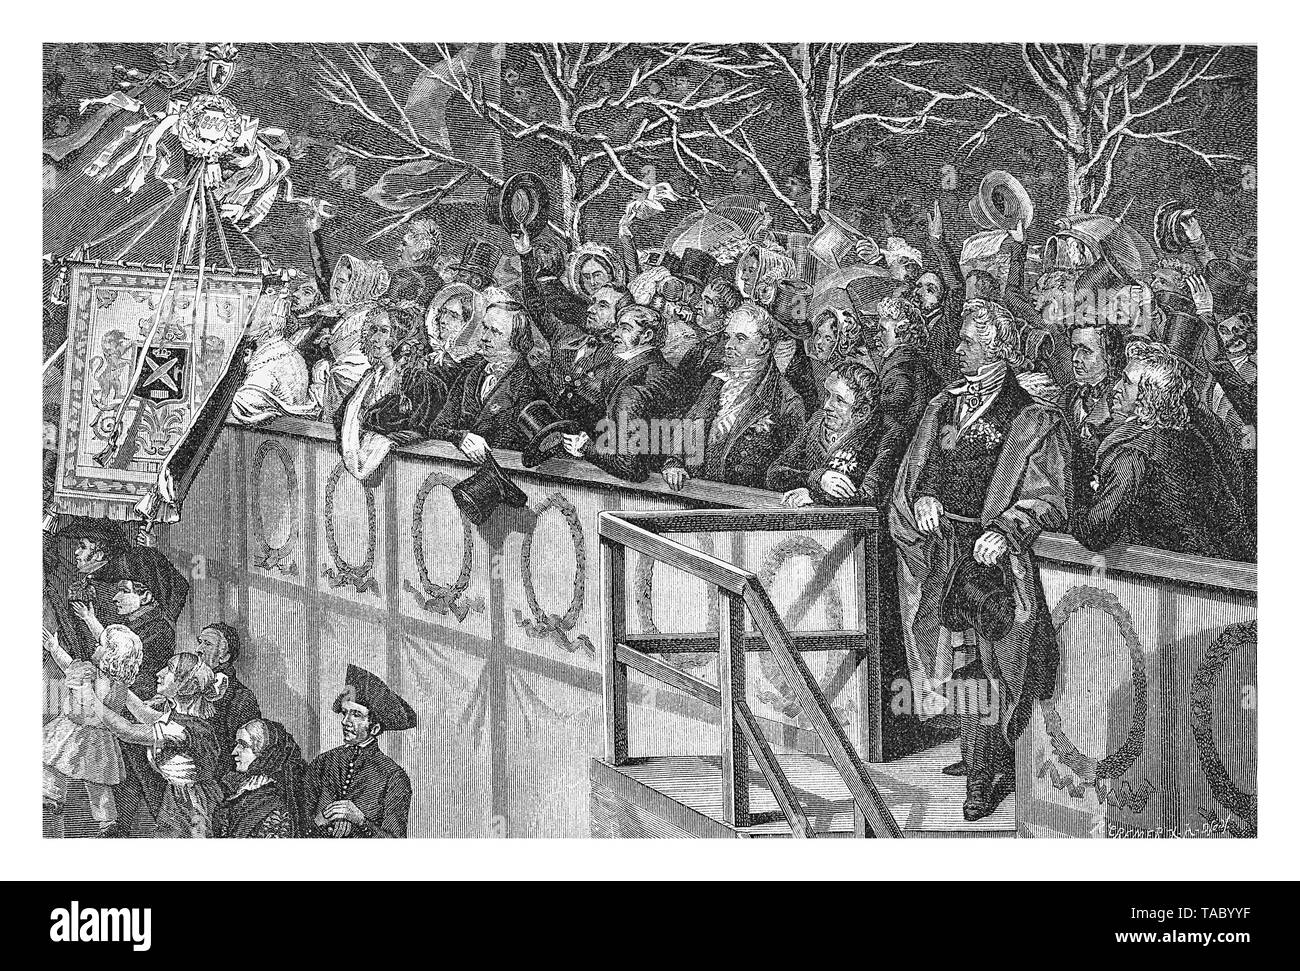 official gallery for the homage to Frederick William IV of Prussia in a public ceremony in Berlin october 15th 1840 - Stock Image